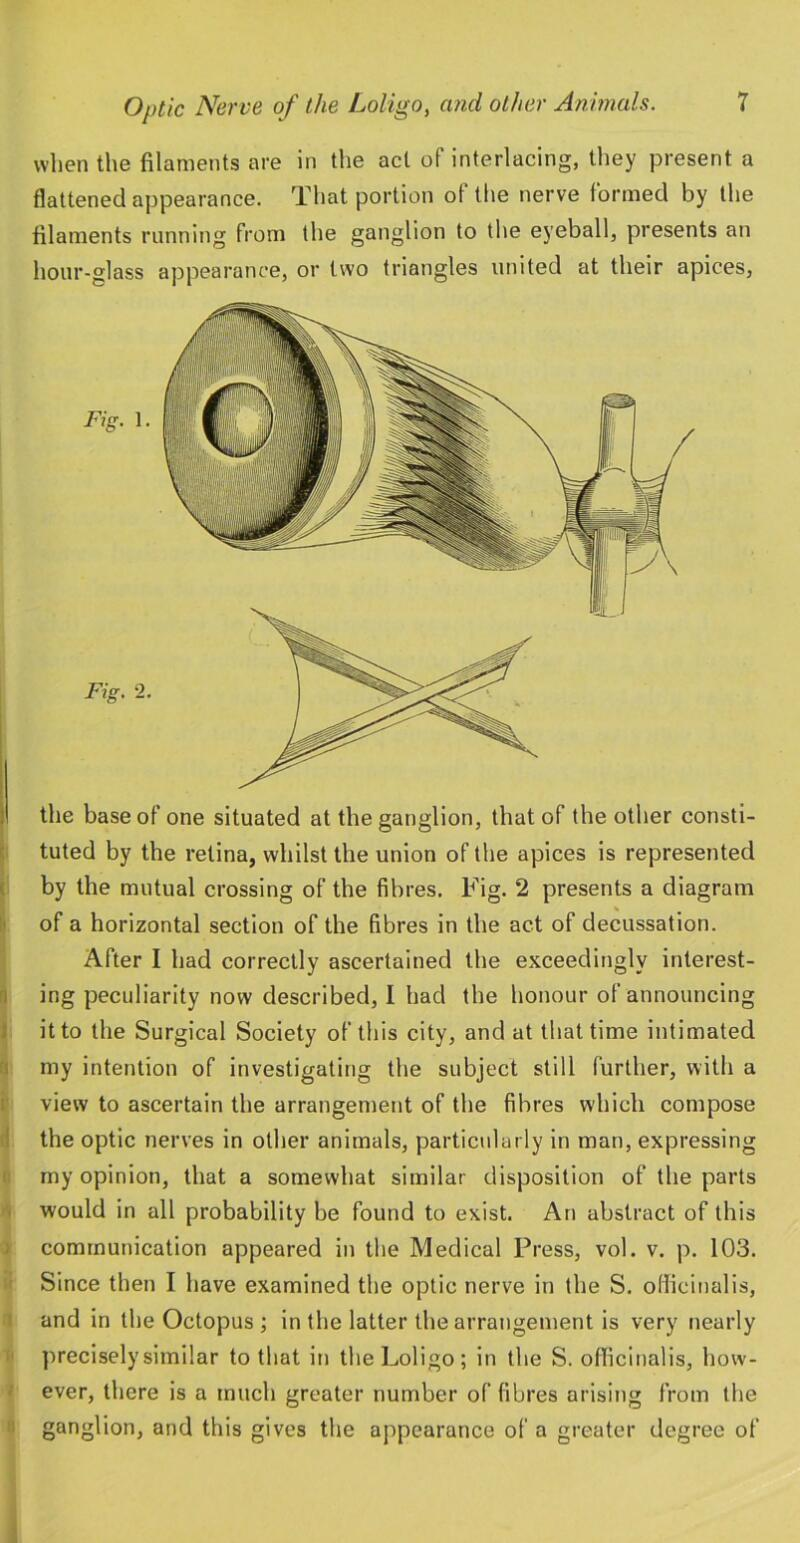 when the filaments are in the act of interlacing, they present a flattened appearance. That portion of the nerve formed by the filaments running from the ganglion to the eyeball, presents an hour-glass appearance, or two triangles united at their apices, 1 the base of one situated at the ganglion, that of the other consti- ■ tuted by the retina, whilst the union of the apices is represented ( by the mutual crossing of the fibres. Fig. 2 presents a diagram !' of a horizontal section of the fibres in the act of decussation. After I had correctly ascertained the exceedingly interest- n ing peculiarity now described, I had the honour of announcing ) it to the Surgical Society of this city, and at that time intimated my intention of investigating the subject still further, with a I view to ascertain the arrangement of the fibres which compose 1 the optic nerves in other animals, particularly in man, expressing ! my opinion, that a somewhat similar disposition of the parts . would in all probability be found to exist. An abstract of this ) communication appeared in the Medical Press, vol. v. p. 103. ' Since then I have examined the optic nerve in the S. officinalis, and in the Octopus ; in the latter the arrangement is very nearly preciselysimilar to that in the Loligo; in the S. officinalis, how- ever, there is a much greater number of fibres arising from the ganglion, and this gives the appearance of a greater degree of